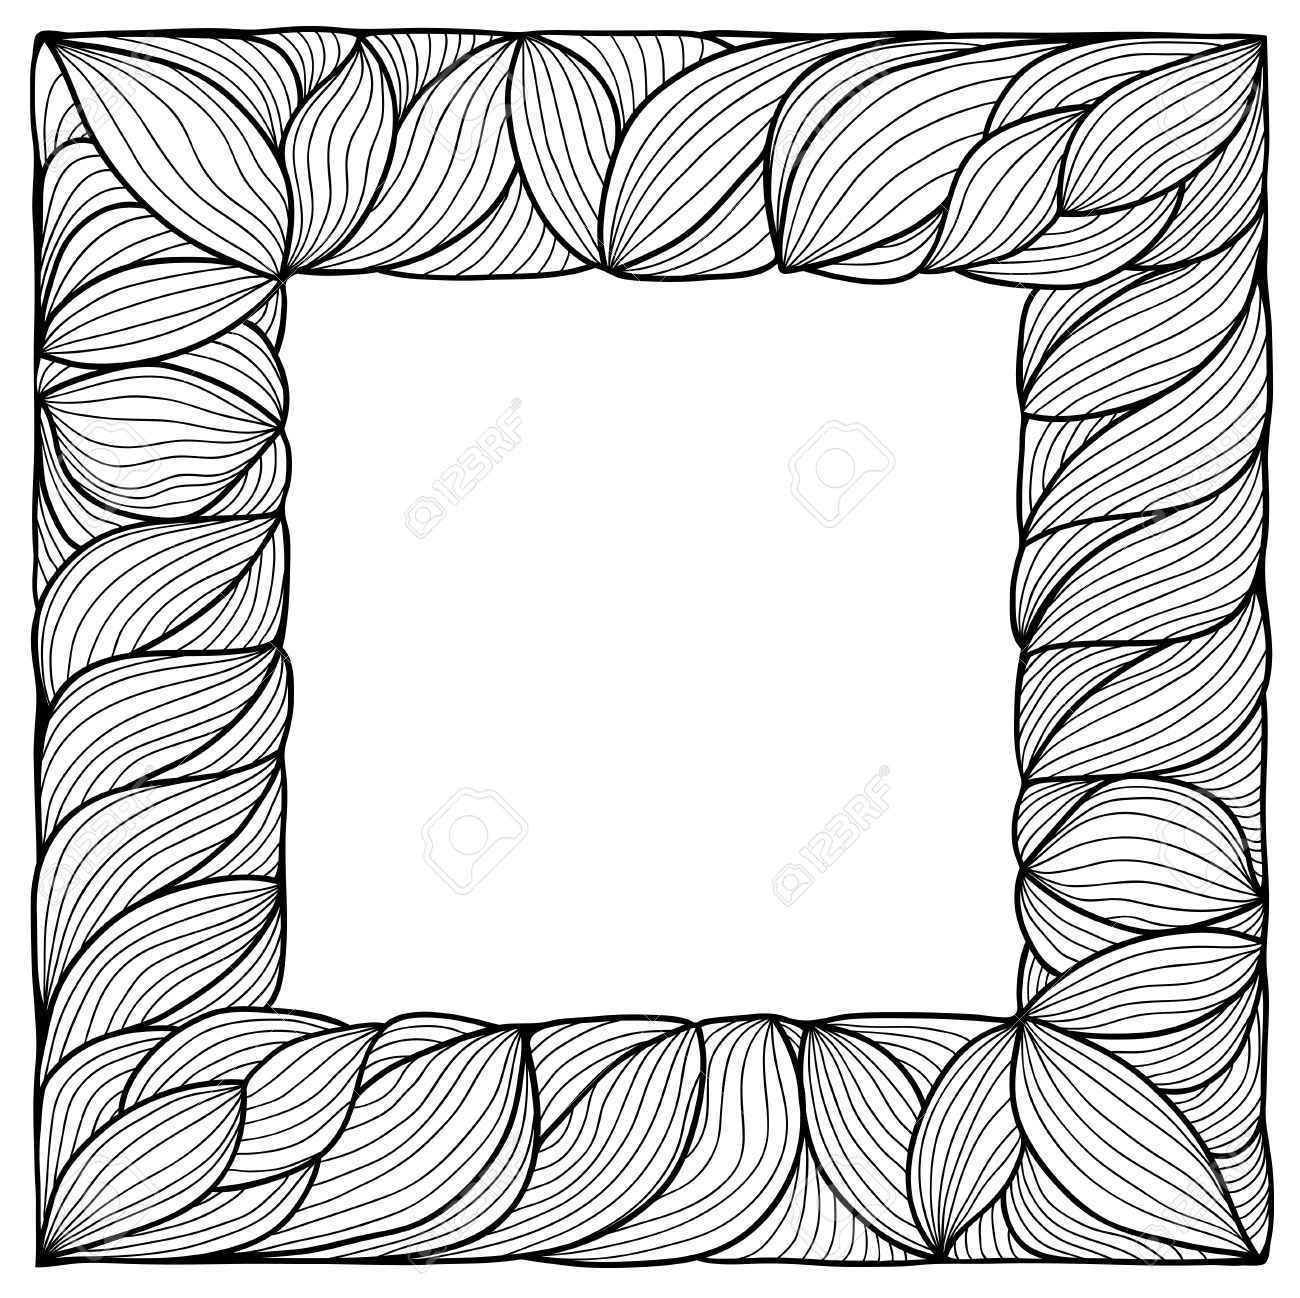 Photo Frame Drawing at GetDrawings.com | Free for personal use Photo ...